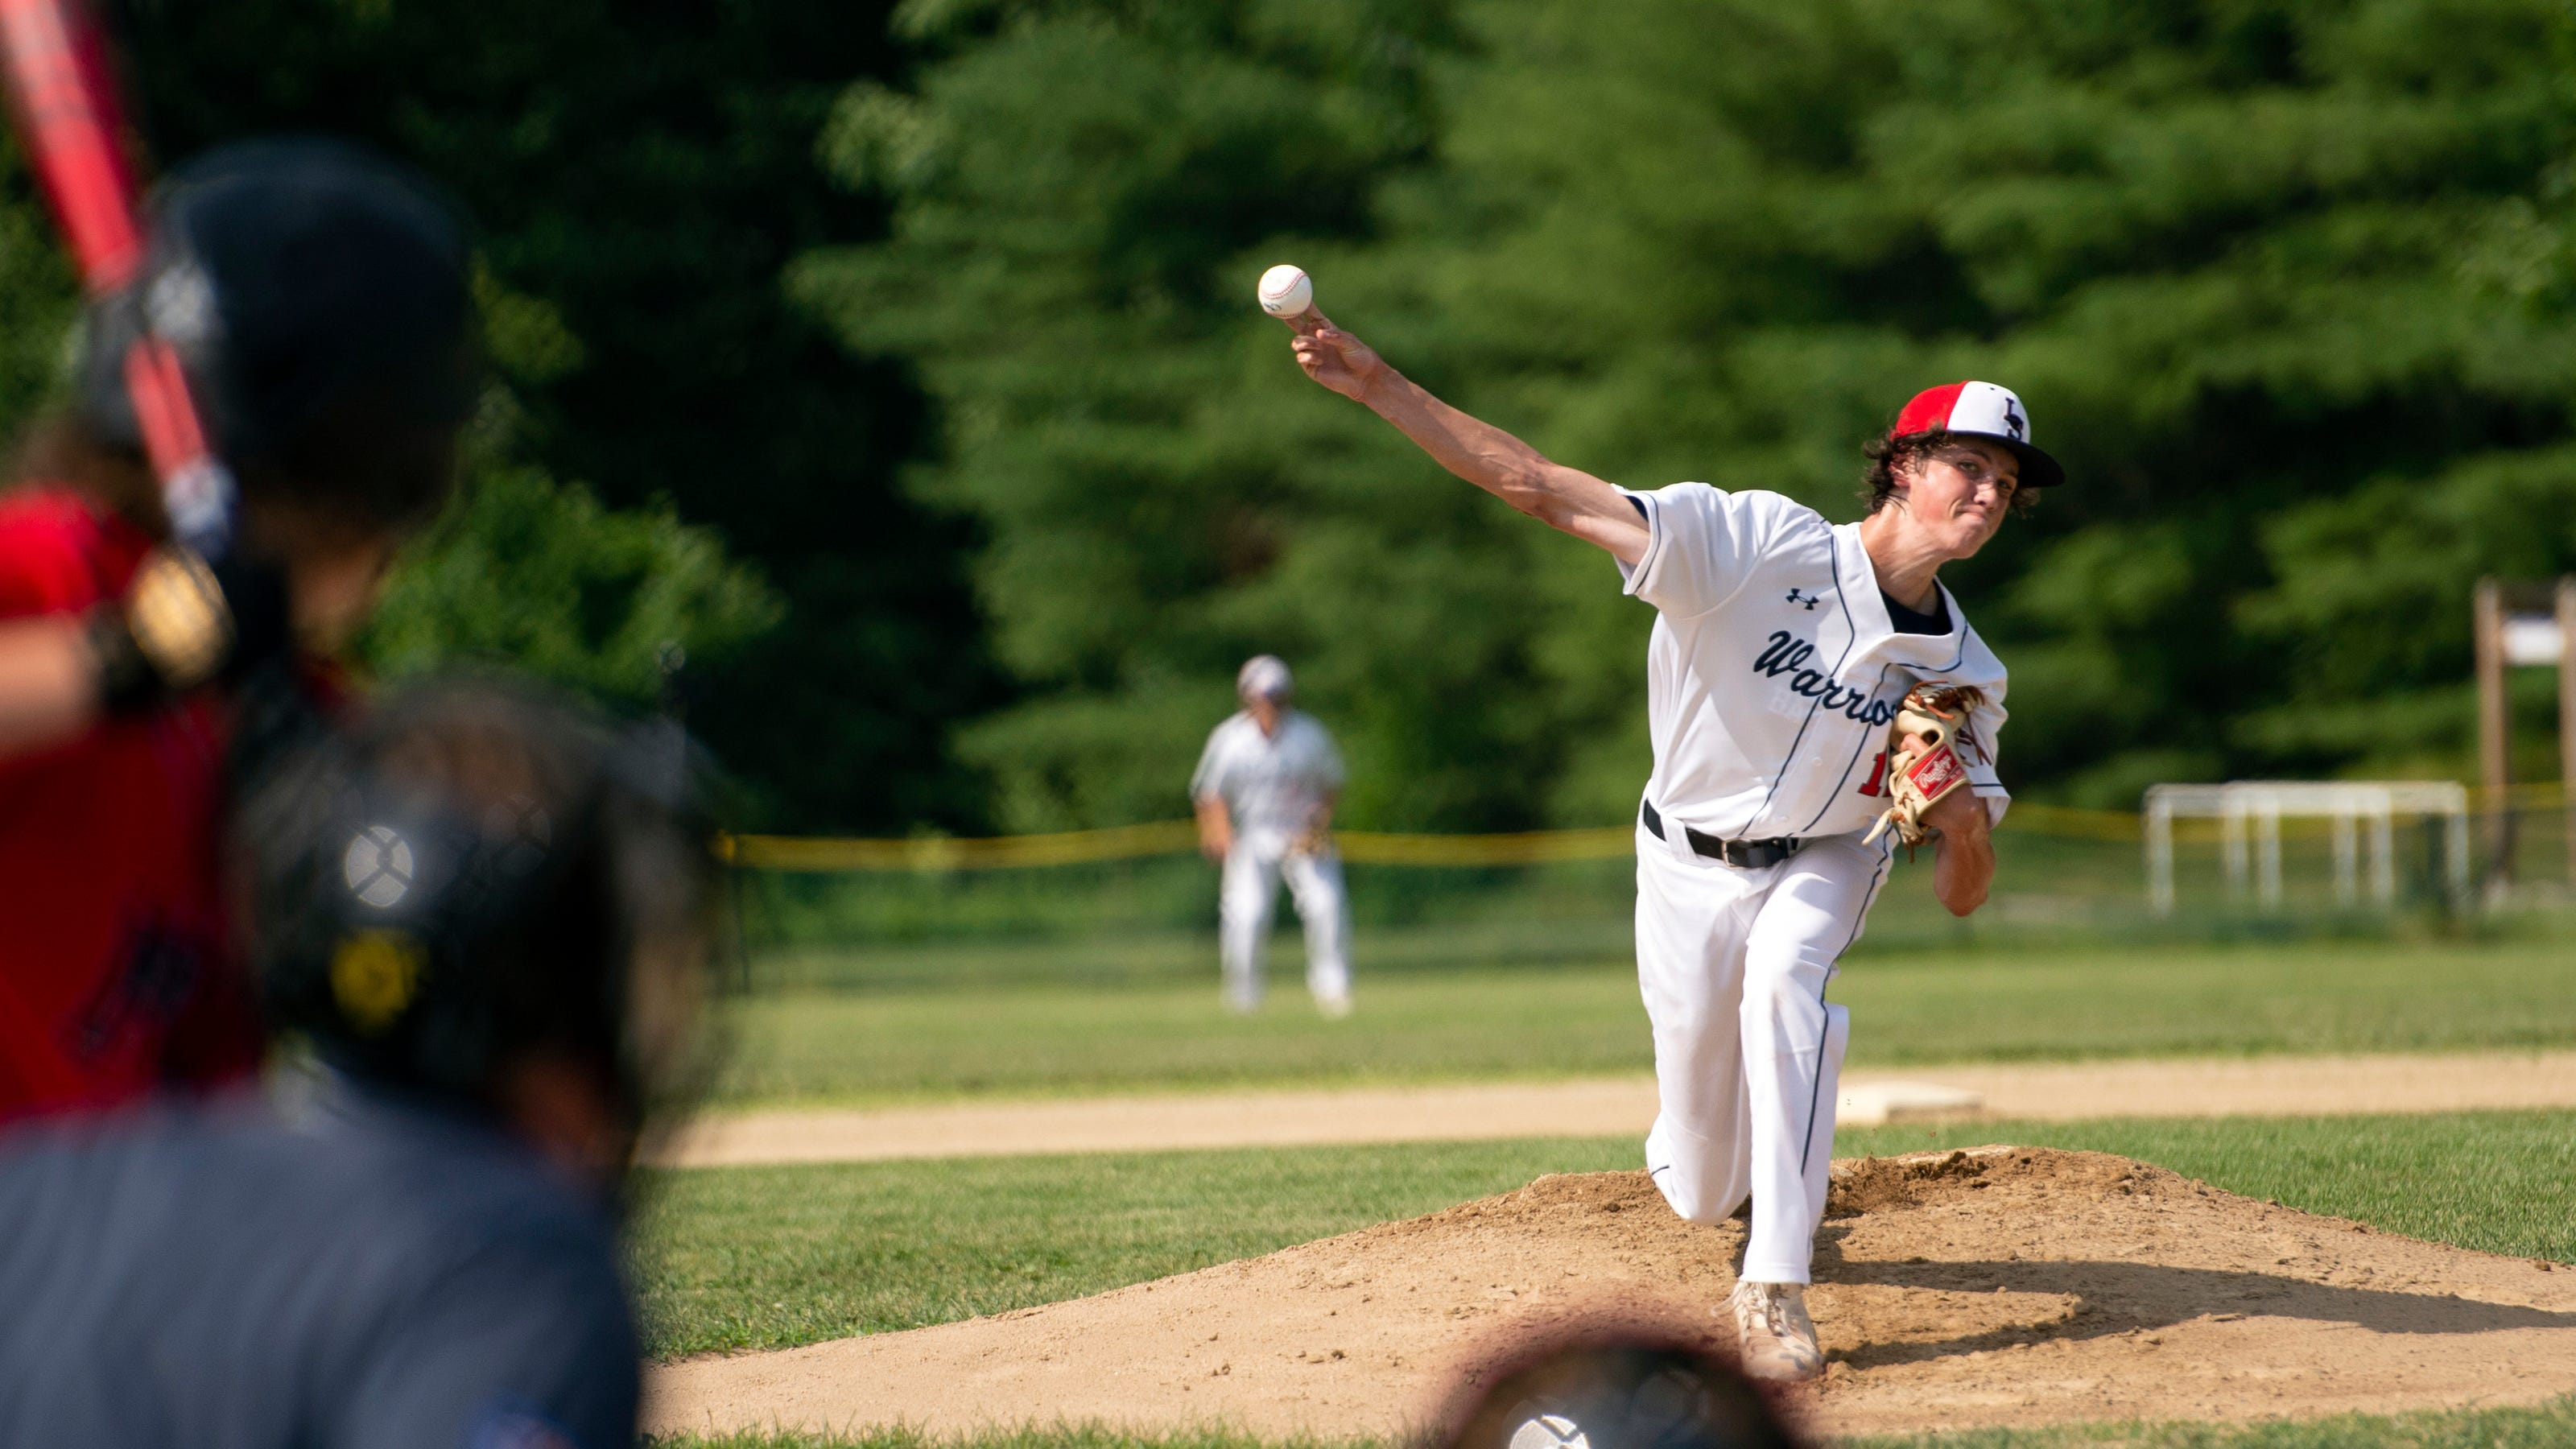 Lincoln-Sudbury graduate Robbie O'Connor commits to play baseball at Wake Forest